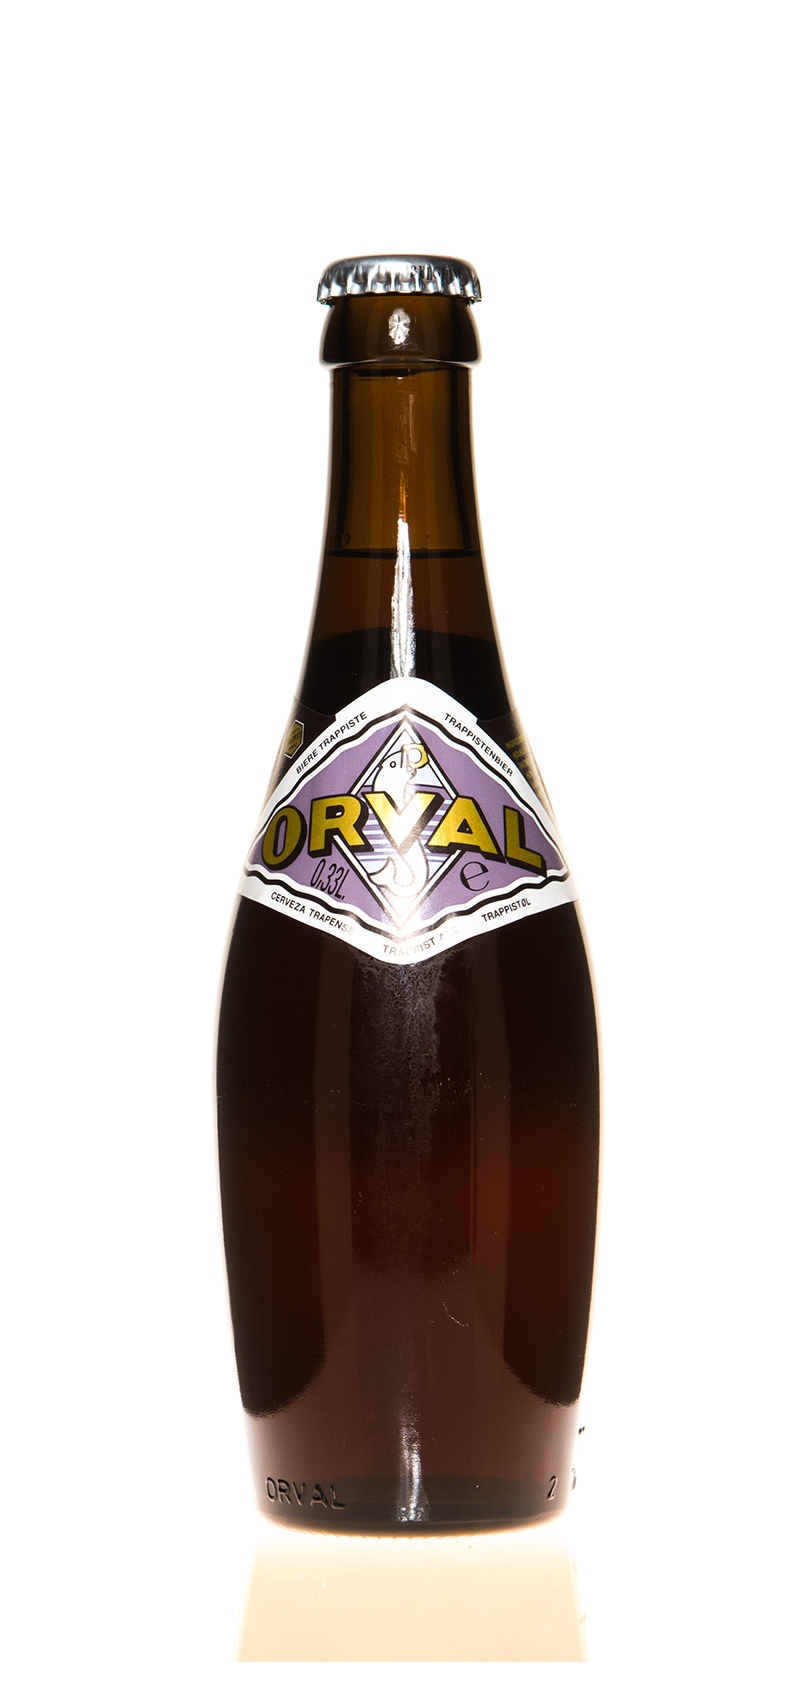 Orval 2013